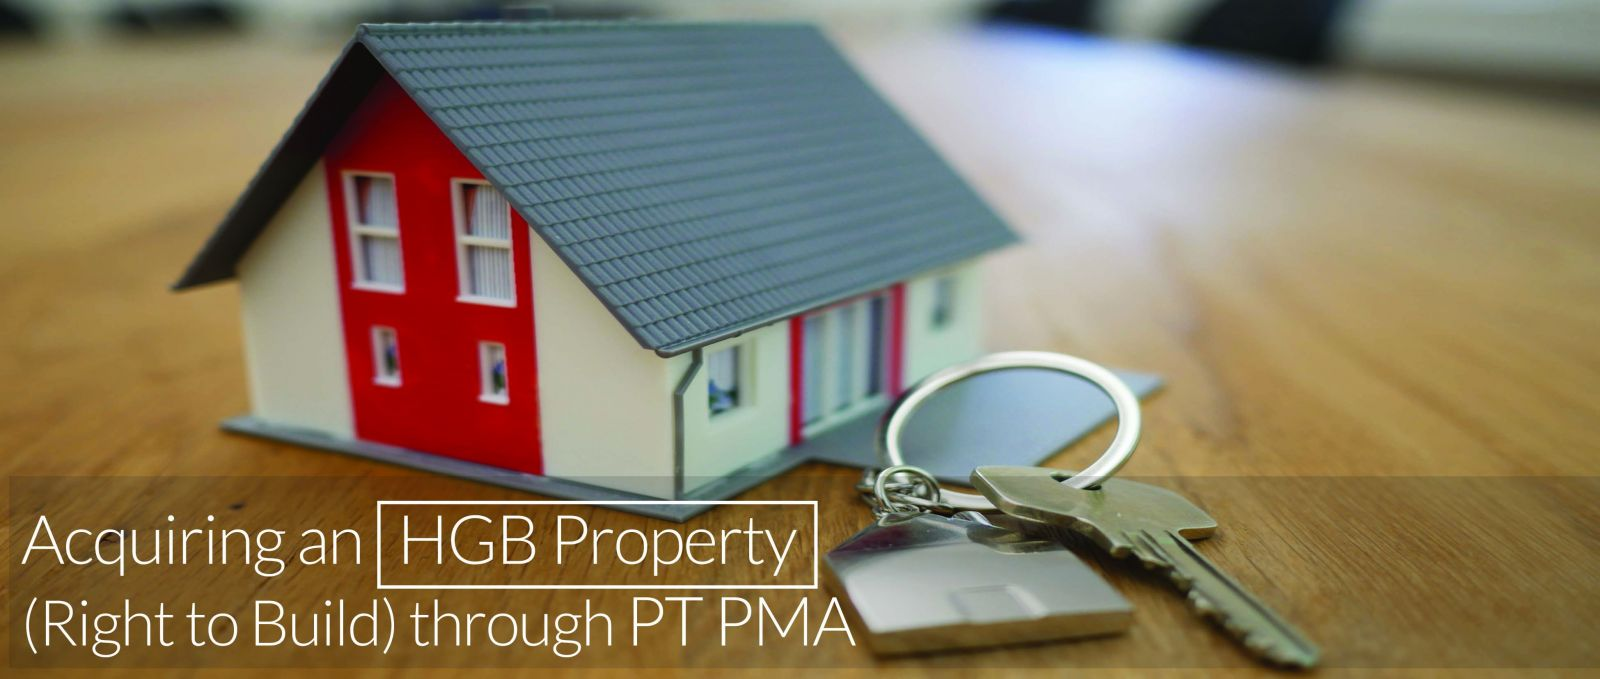 Acquiring an HGB property through PT PMA